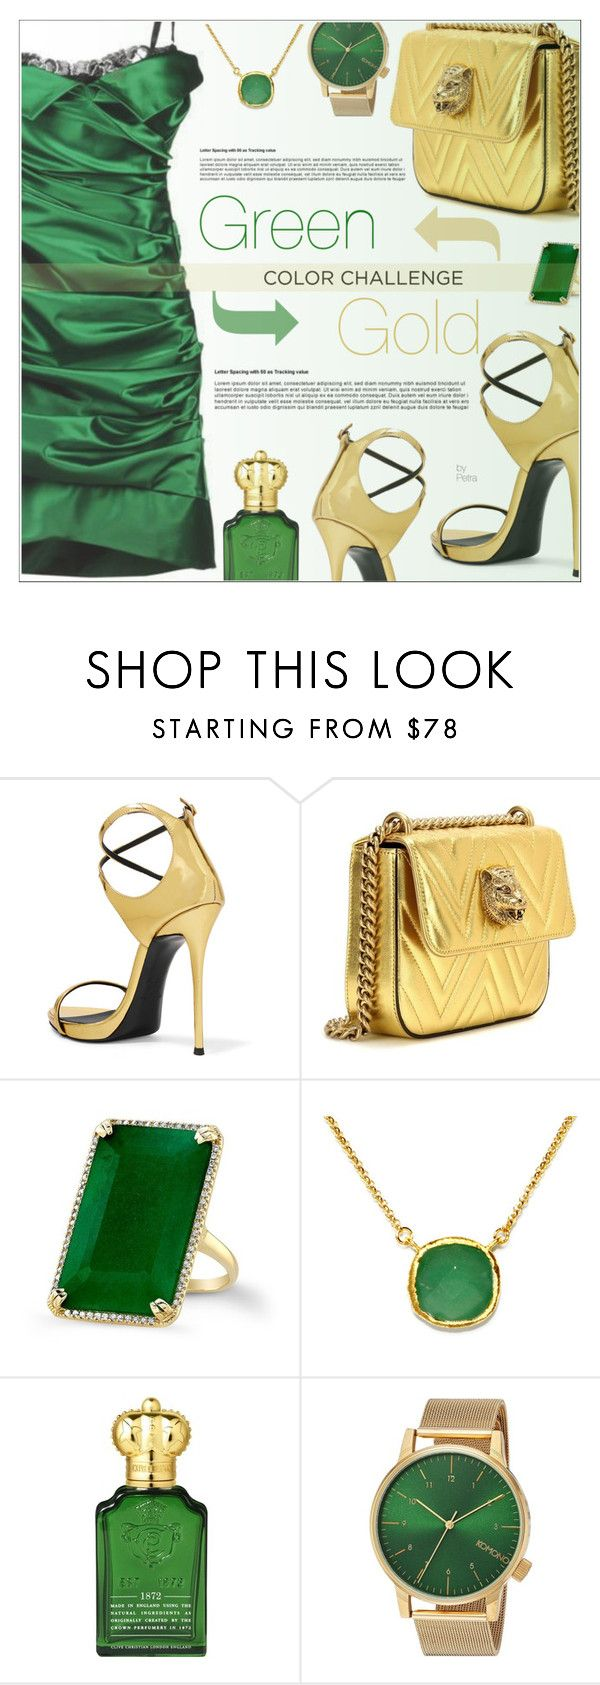 """""""Green And Gold"""" by petrapoly ❤ liked on Polyvore featuring Giuseppe Zanotti, Gucci, Anne Sisteron, BillyTheTree, Clive Christian, Komono, polyvorecommunity, colorchallenge and PolyvoreMostStylish"""